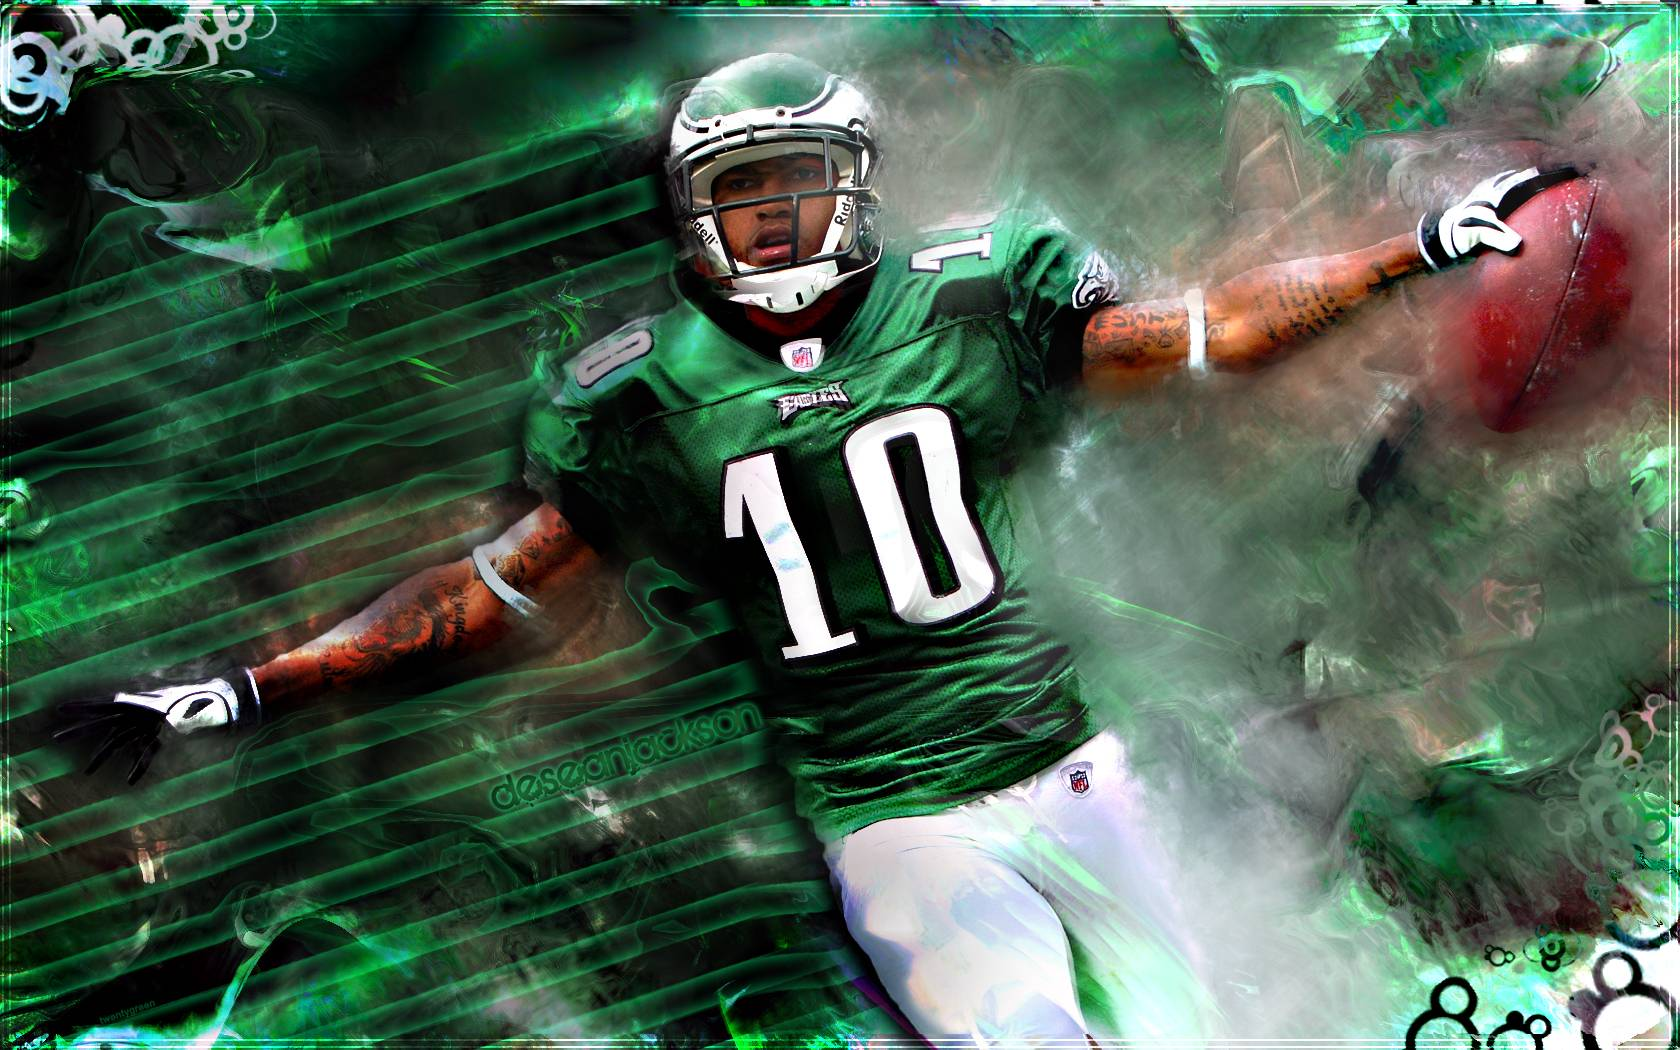 Philadelphia Eagles Wallpaper Desean Jackson Free Full Size ...